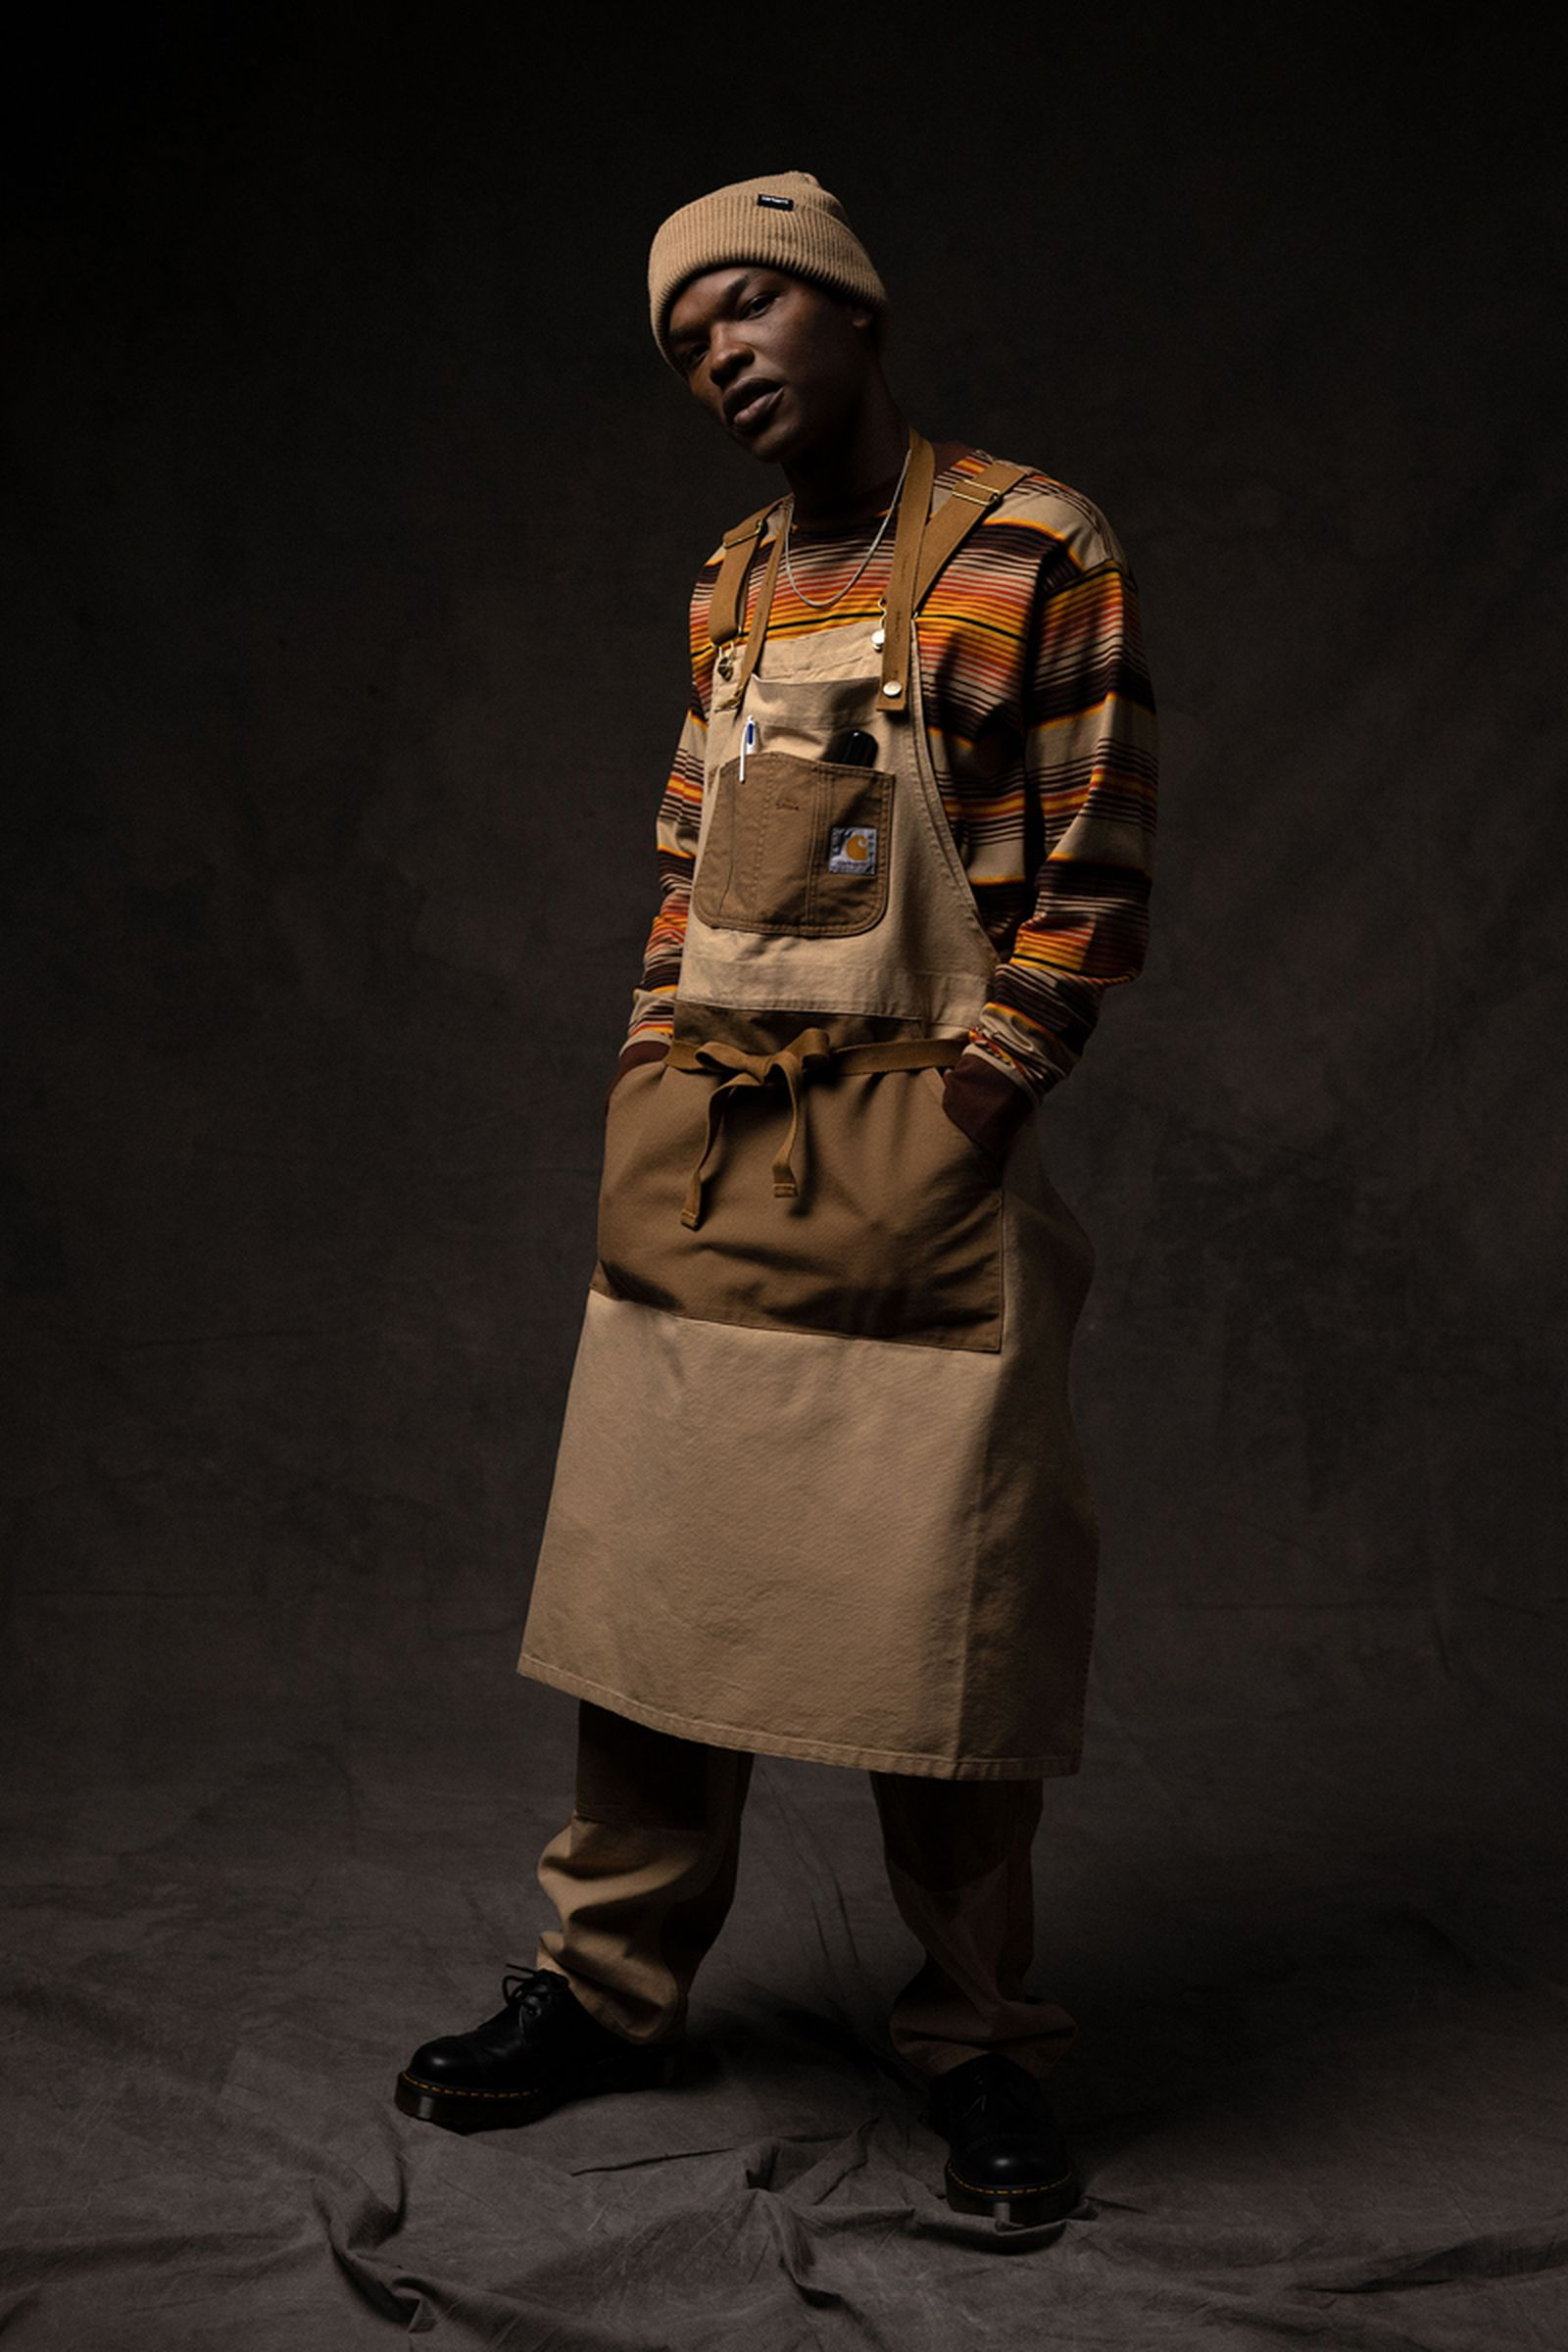 carhartt-wip-fall-winter-2021-collection- (14)